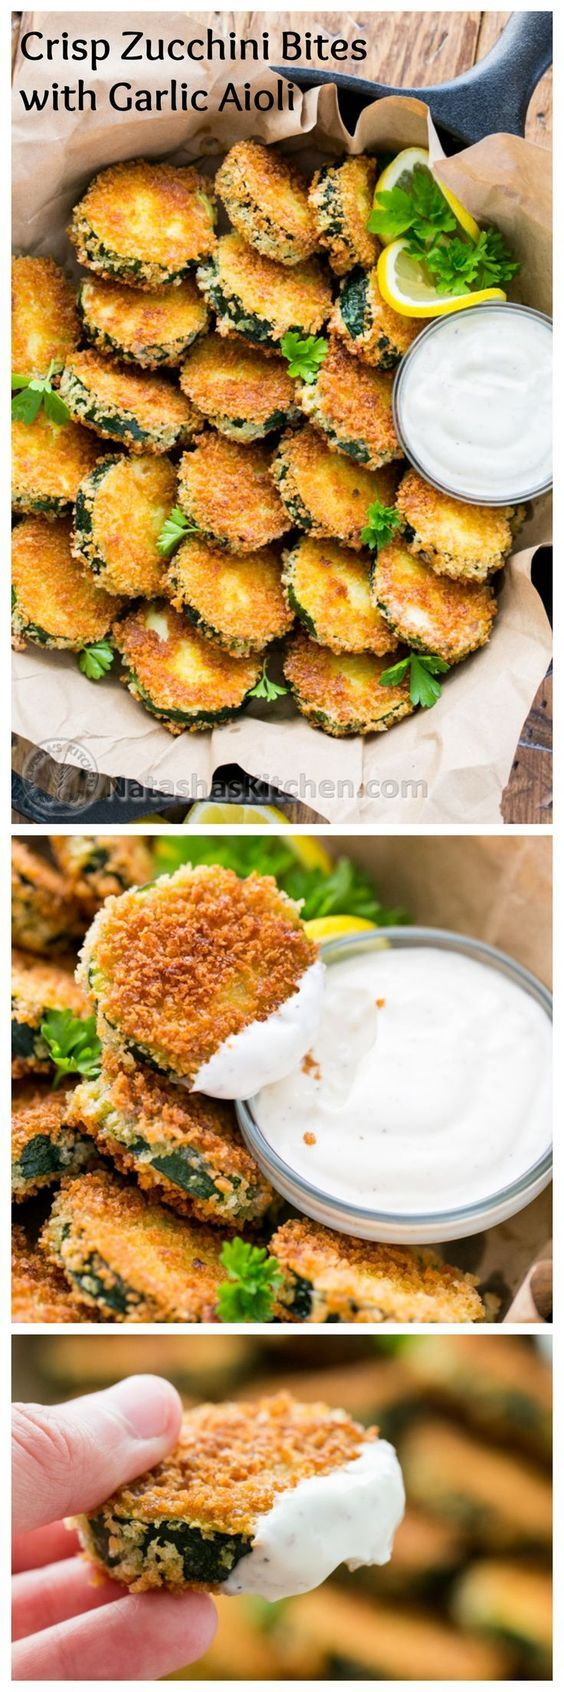 You have to try these crisp zucchini bites paired with an easy garlic aioli dip. It's a winner!